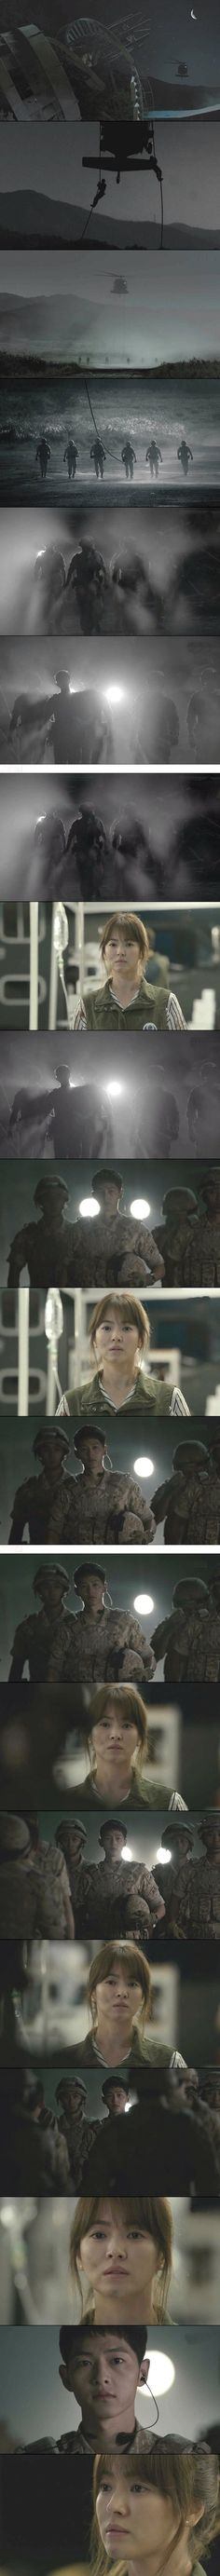 Descendants of the Sun (태양의 후예) Korean - Drama - Episode 7 - Picture @ HanCinema…